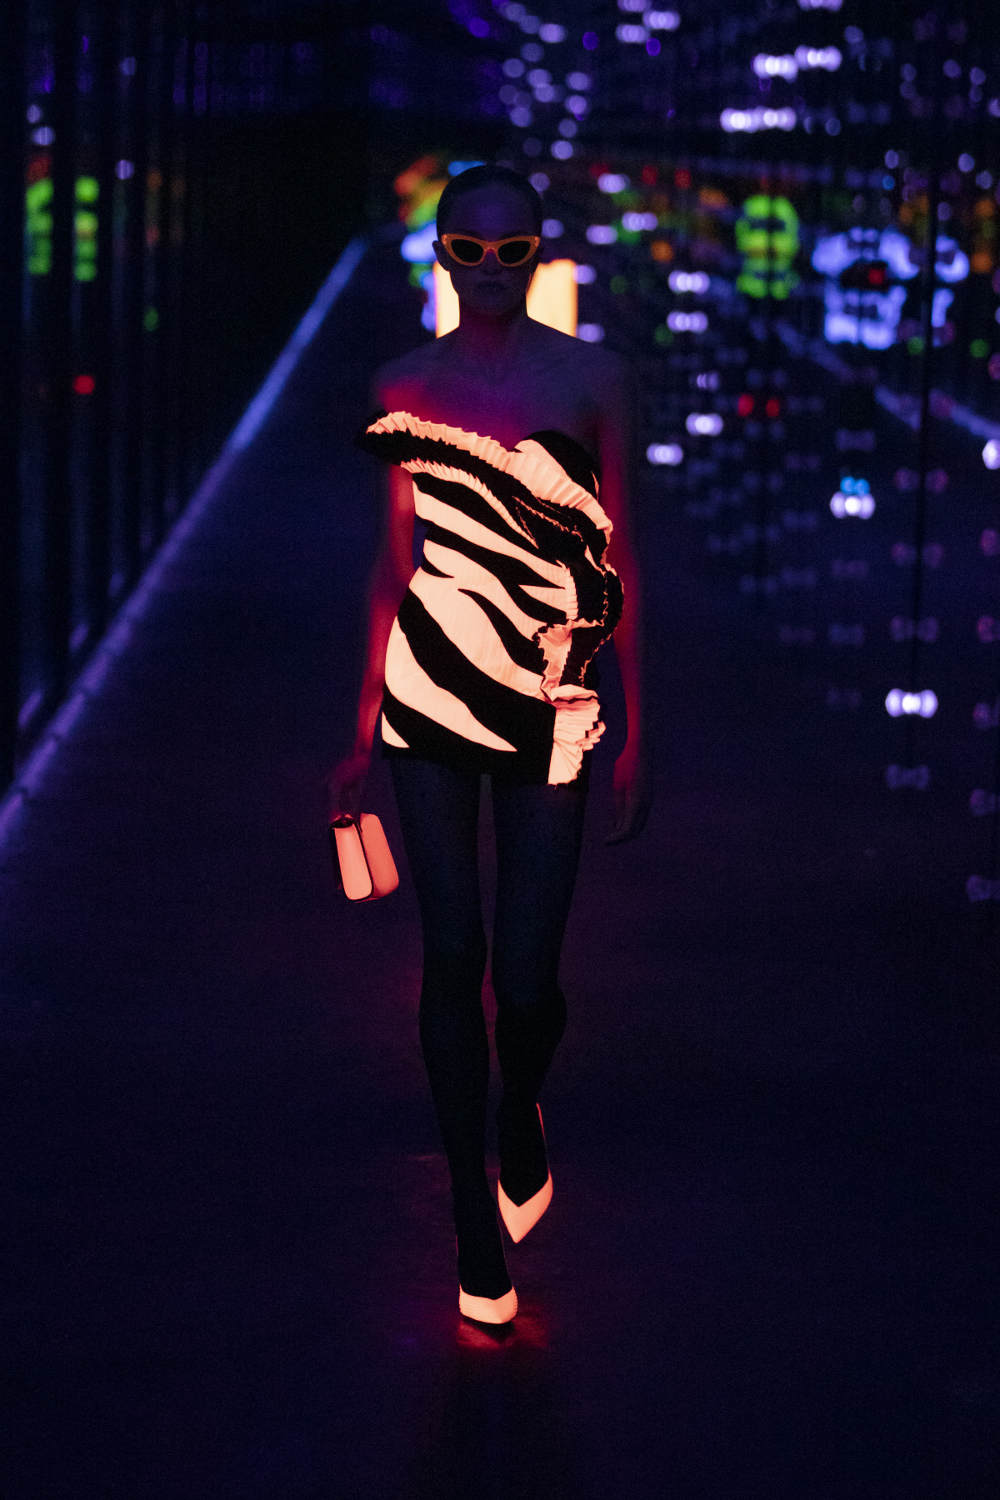 Koleksi 'Glow in the Dark' Saint Laurent